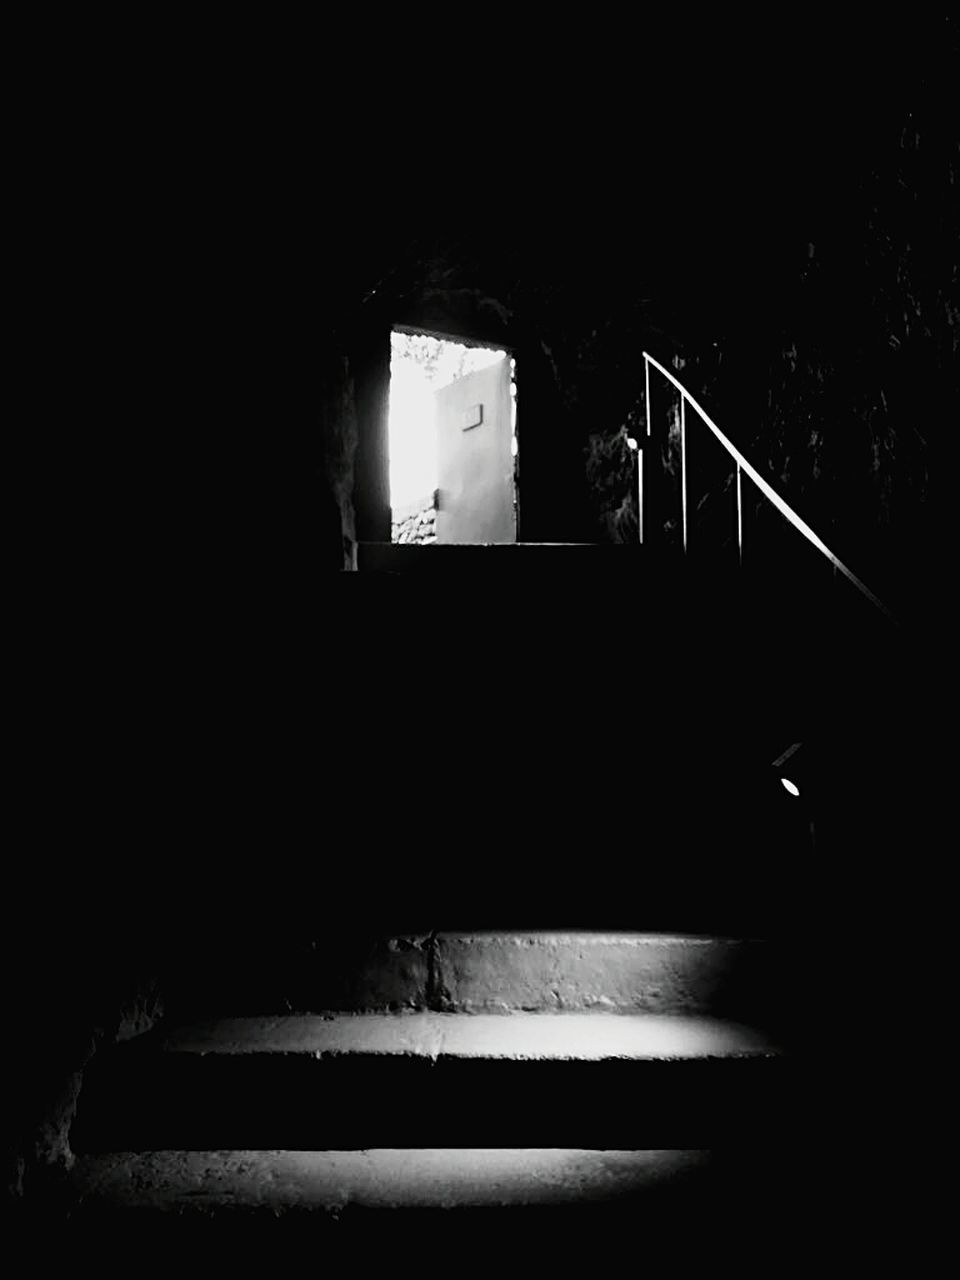 steps, steps and staircases, staircase, railing, indoors, built structure, architecture, night, real people, one person, close-up, people